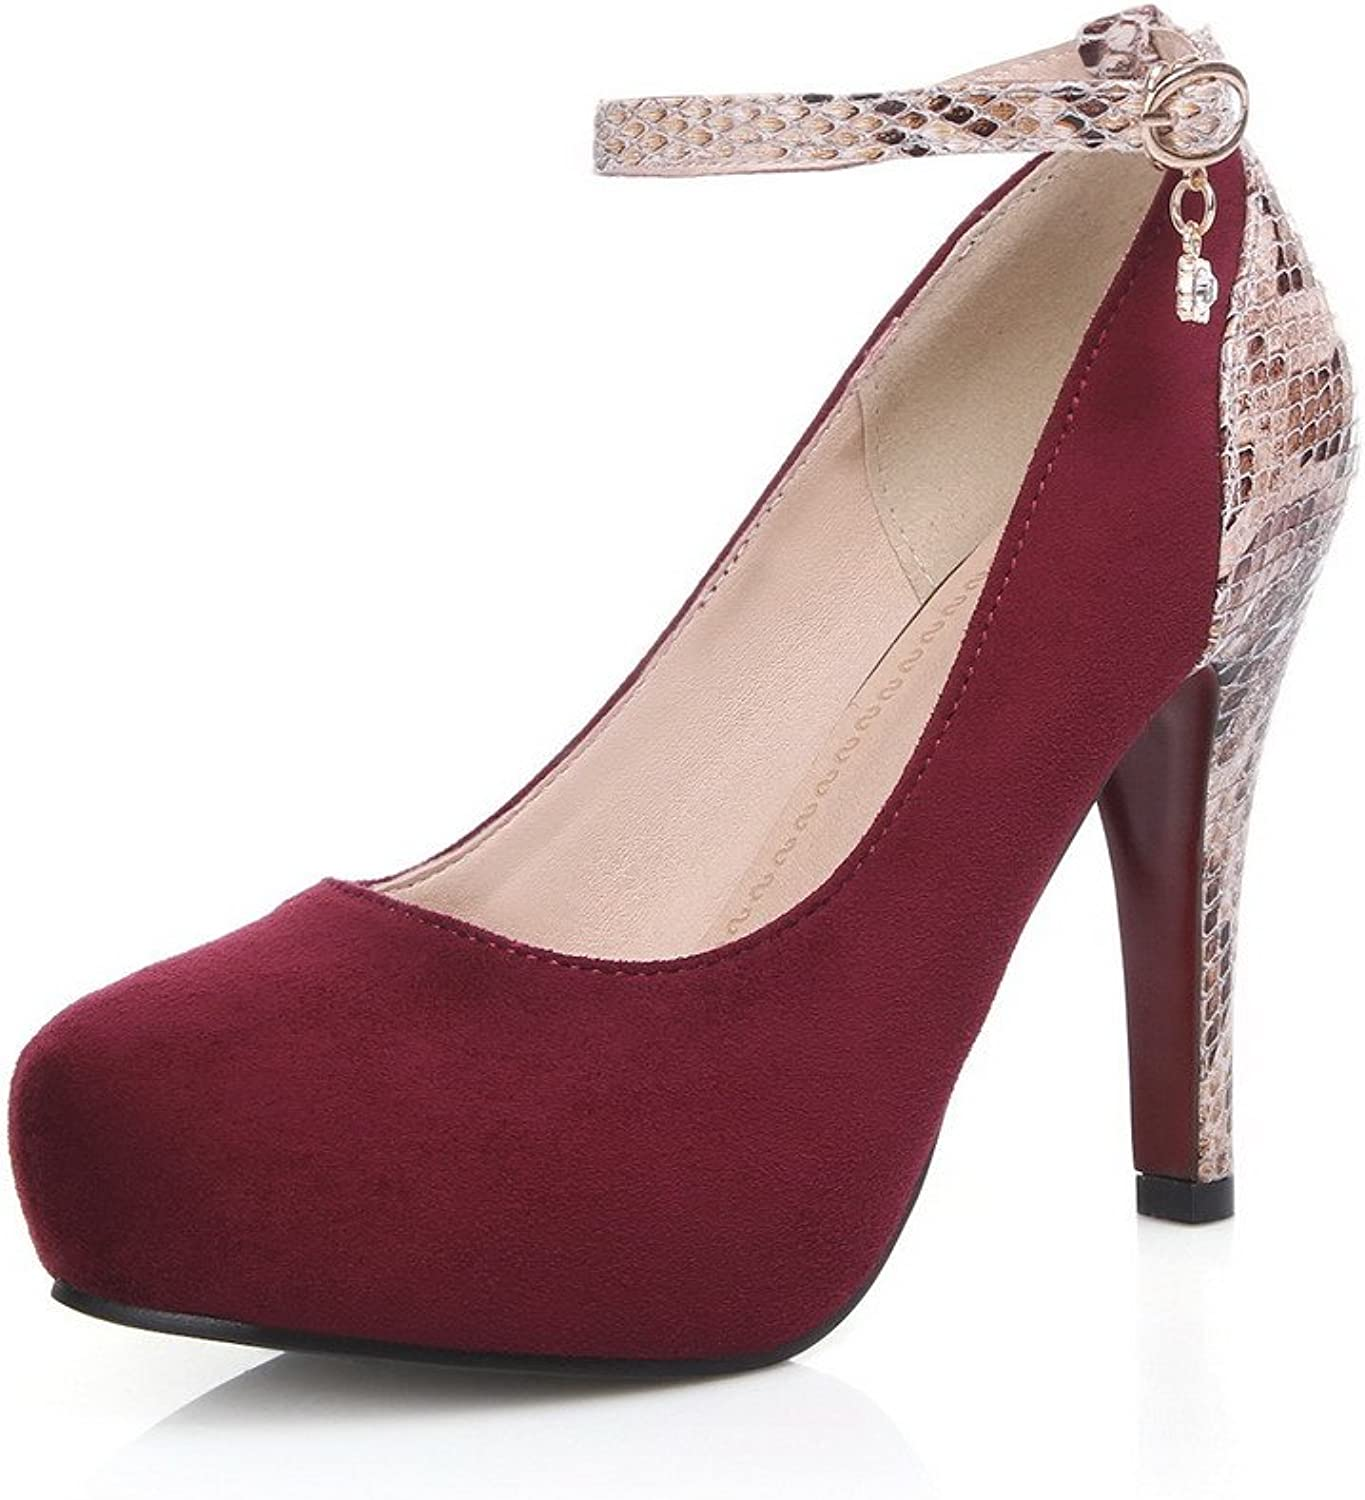 WeenFashion Women's Buckle Round Closed Toe Spikes Stilettos Assorted color Pumps-shoes